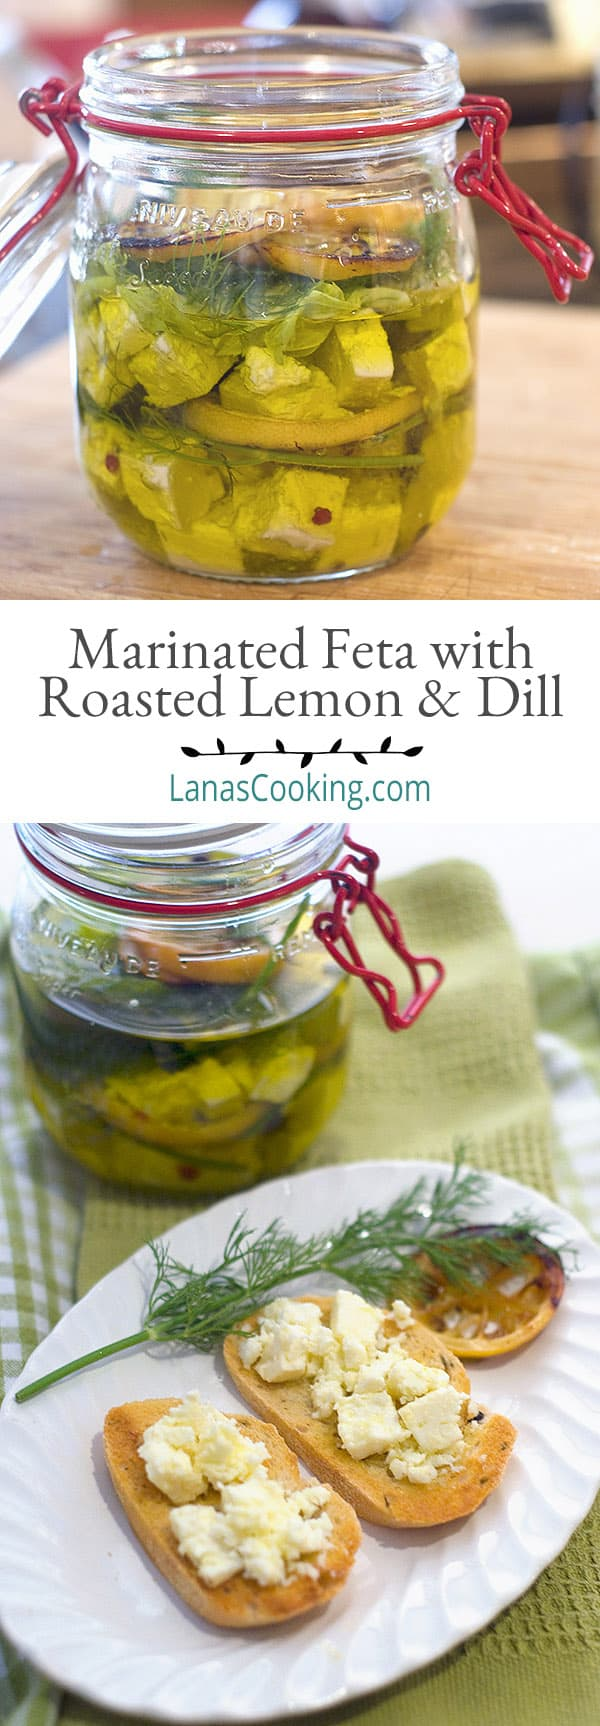 Marinated Feta with Roasted Lemon and Dill - Feta cheese marinated with roasted lemon, dill, and red pepper flakes. Add to a salad or baguette. From @NevrEnoughThyme http://www.lanascooking.com/marinated-feta-roasted-lemon/